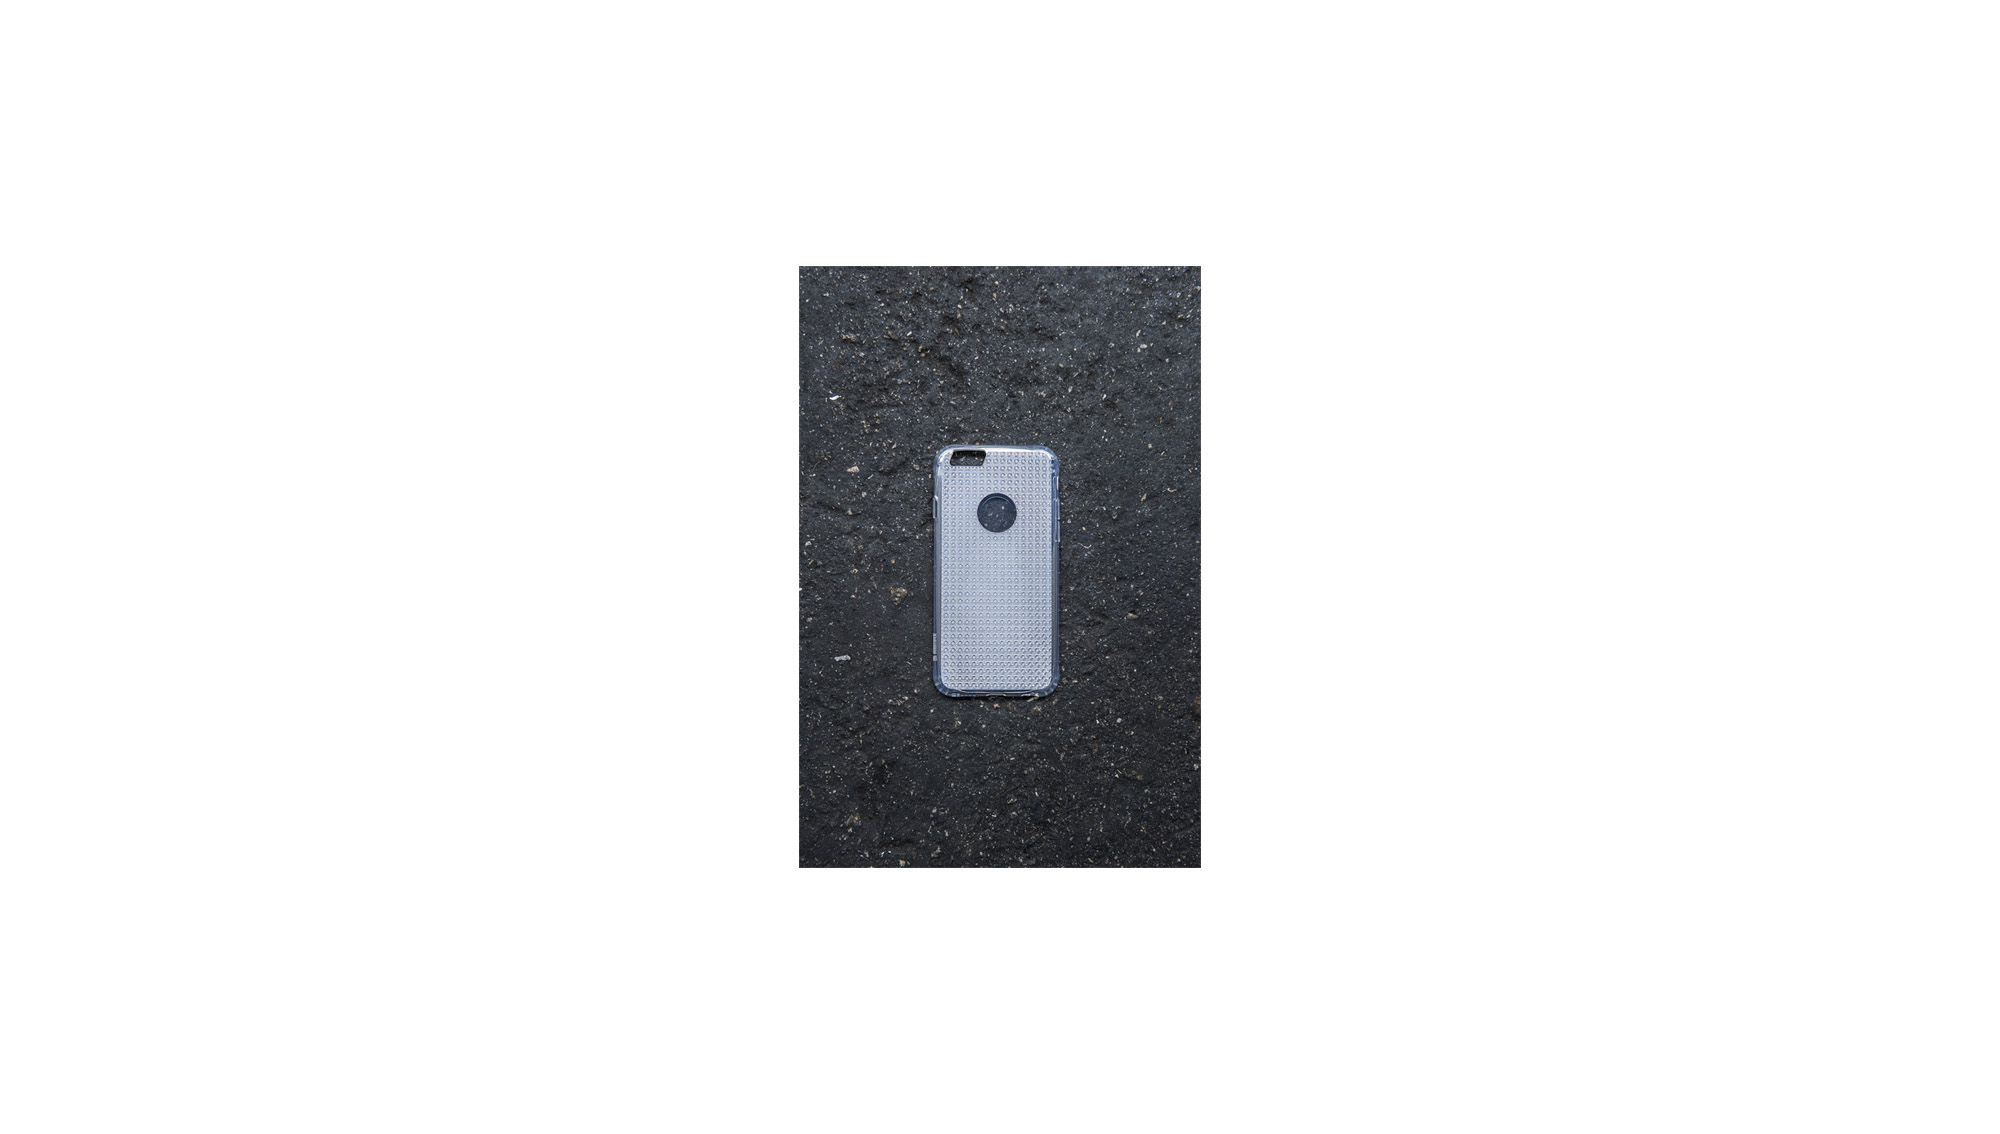 Iphone case web reswith white border for website.jpg